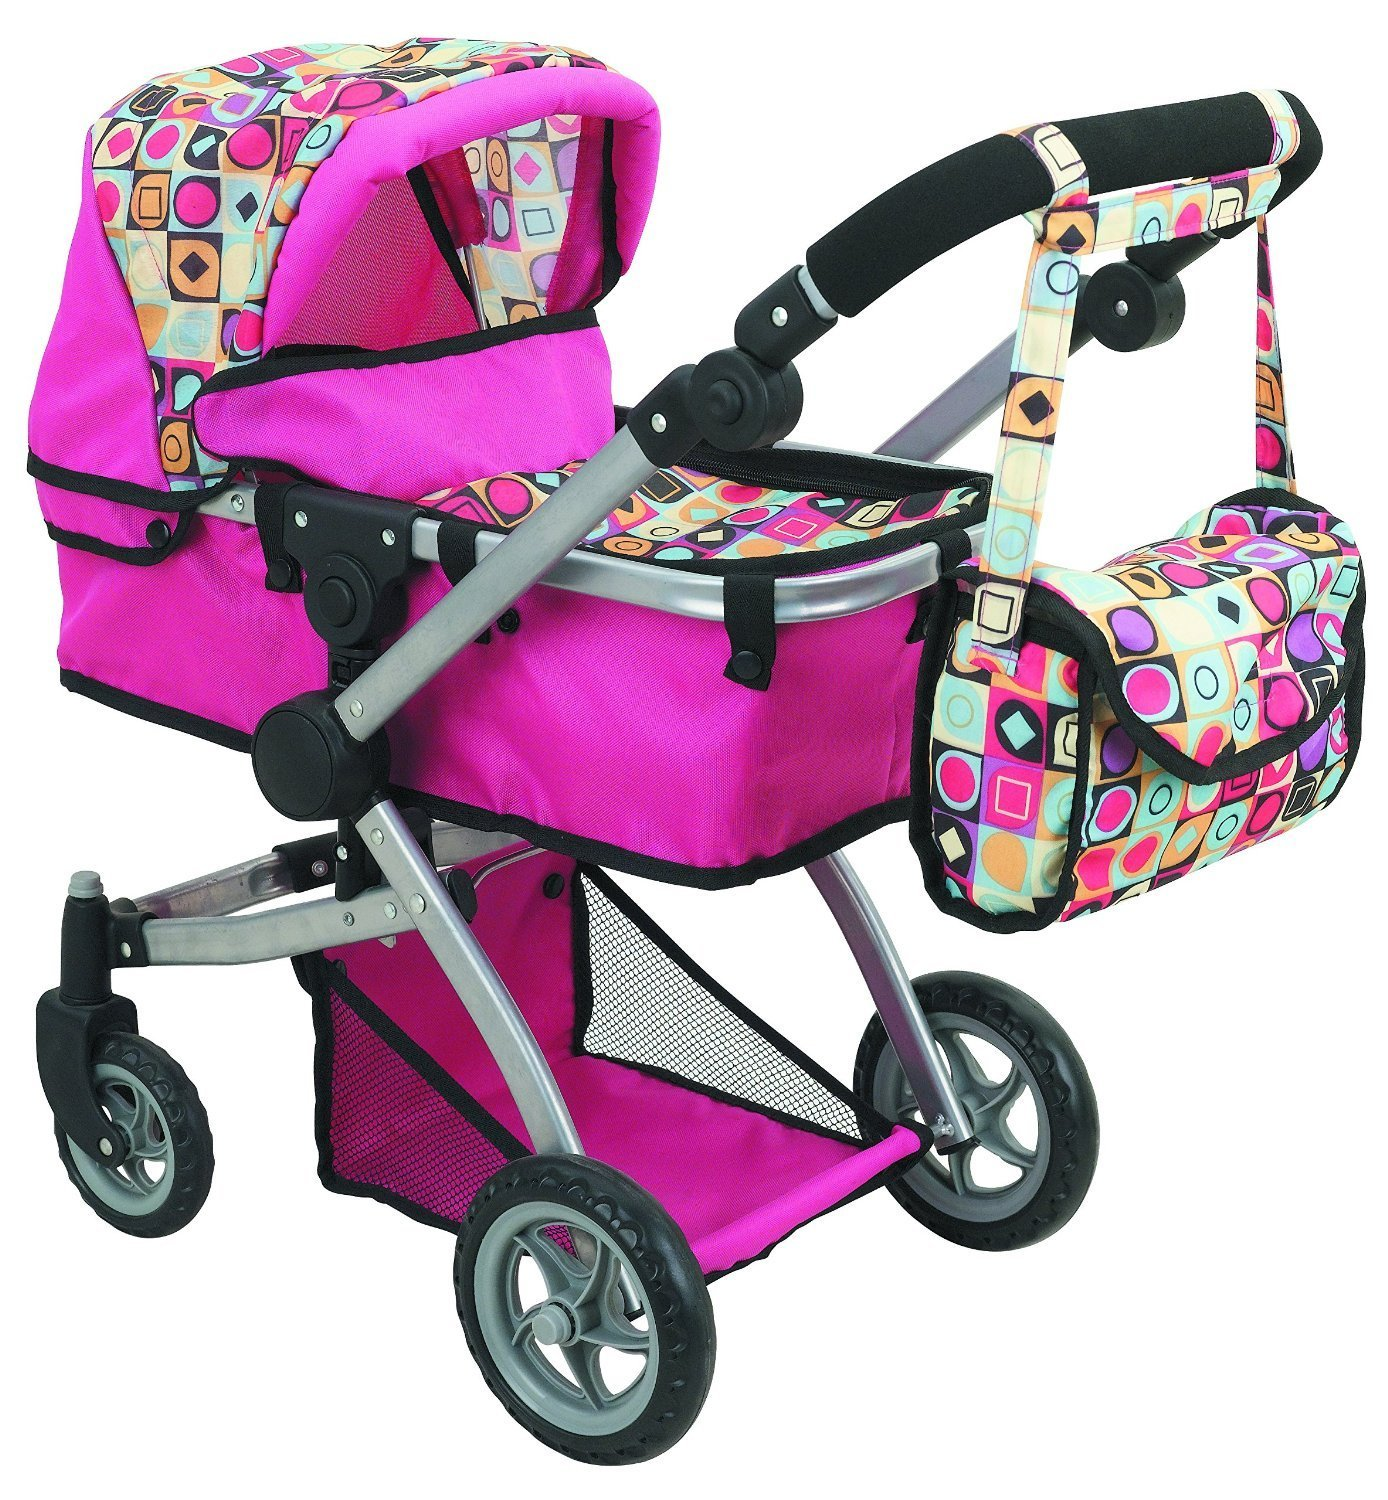 Amazon Doll Strollers Pro Deluxe Doll Stroller with Swiveling Wheels Adjustable Handle and Carriage Bag Toys & Games